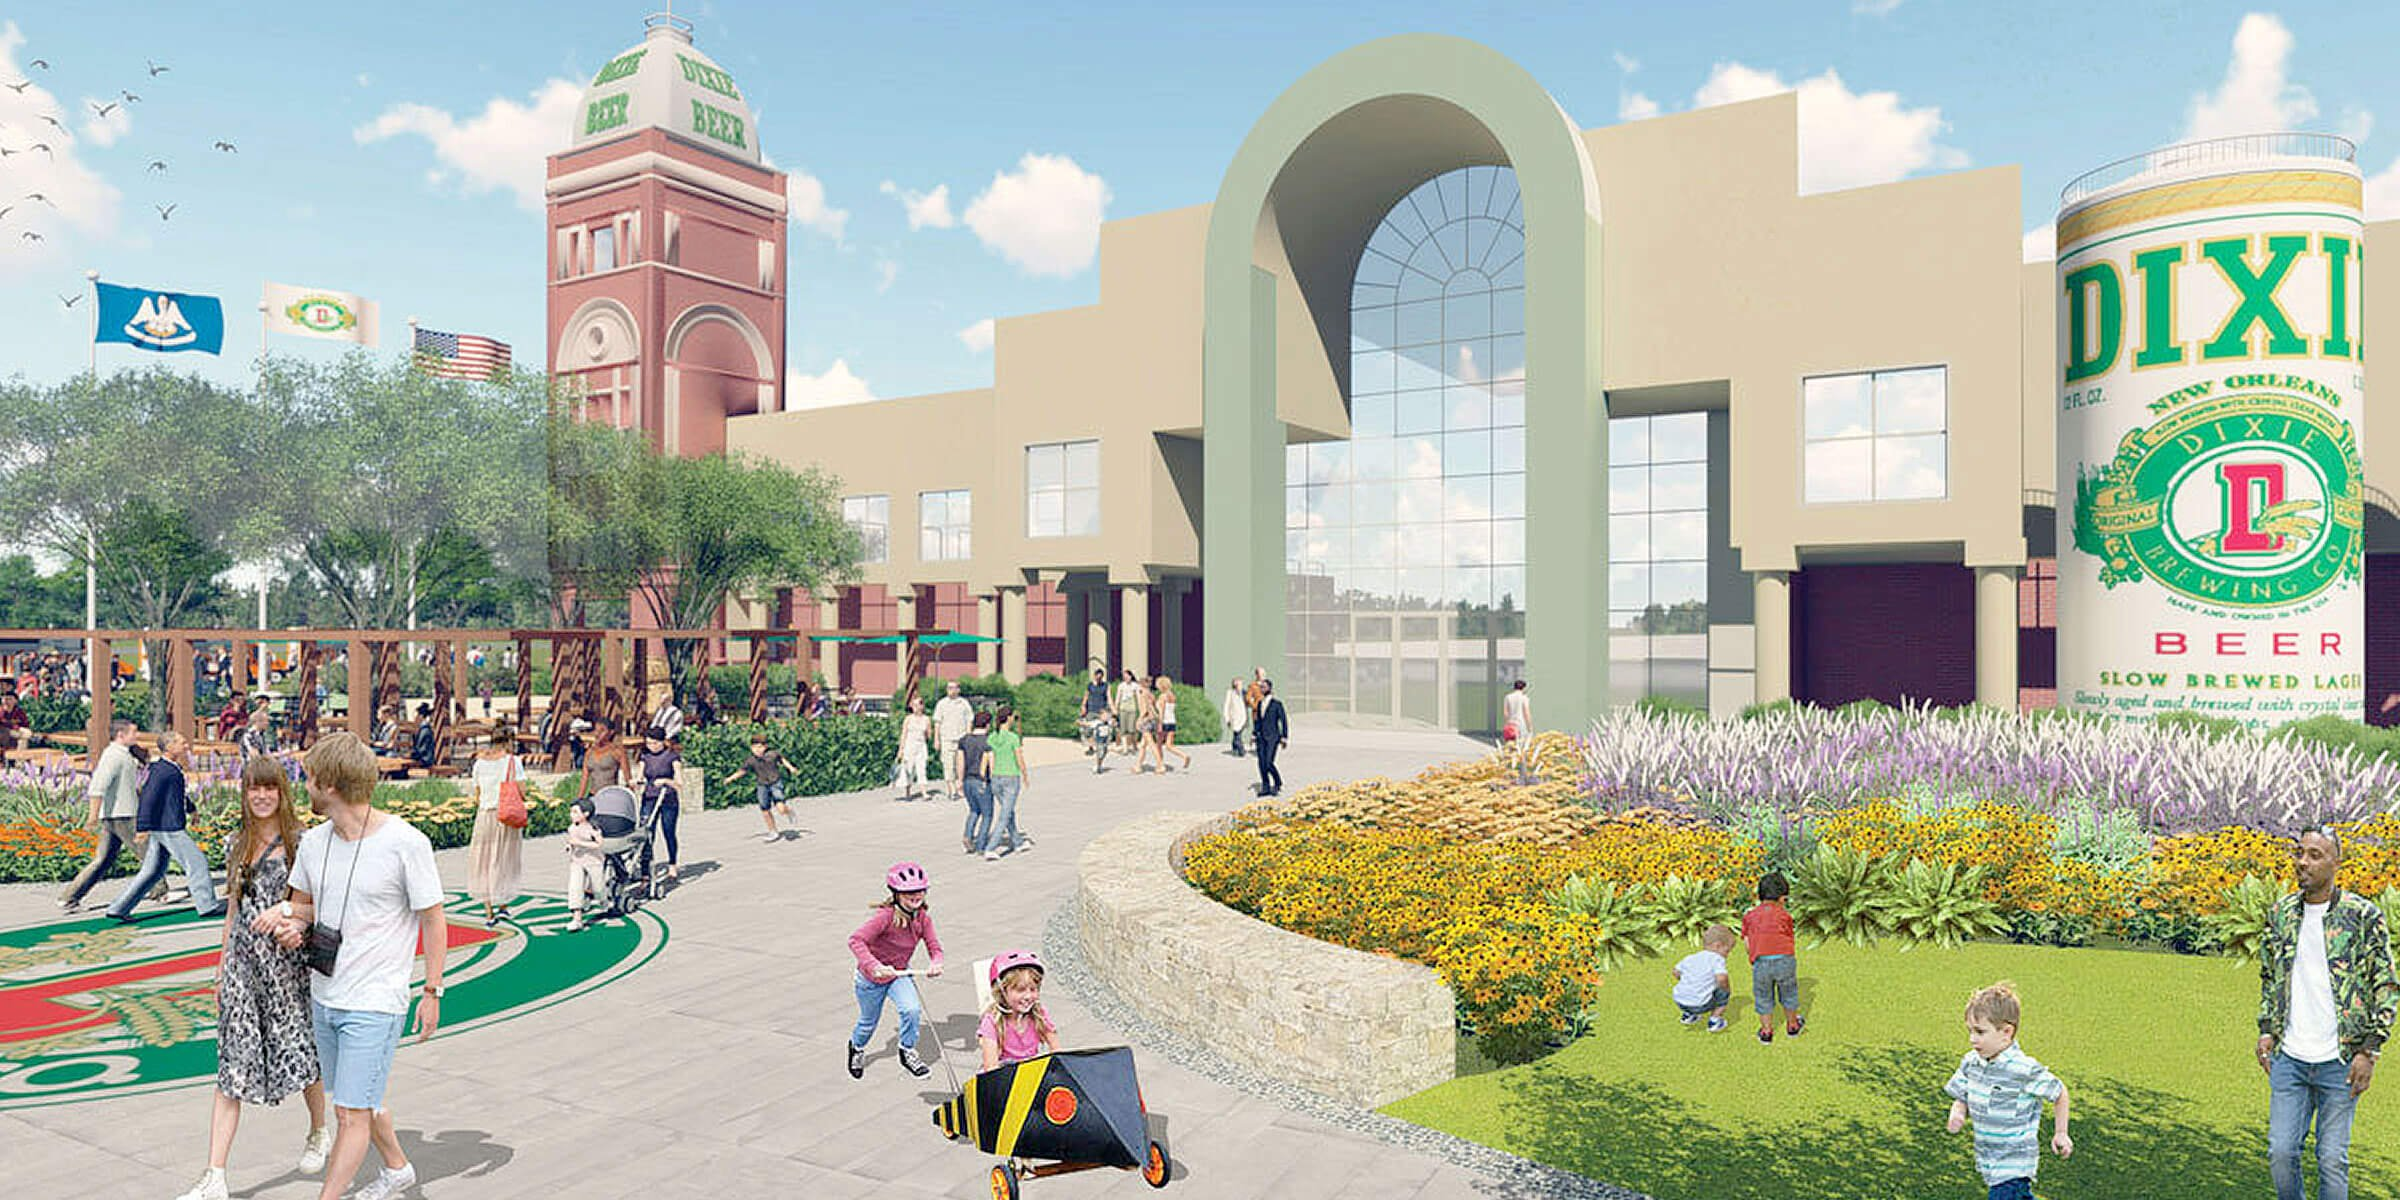 Conceptual rendering of the new Dixie Brewing Company in New Orleans, Louisiana